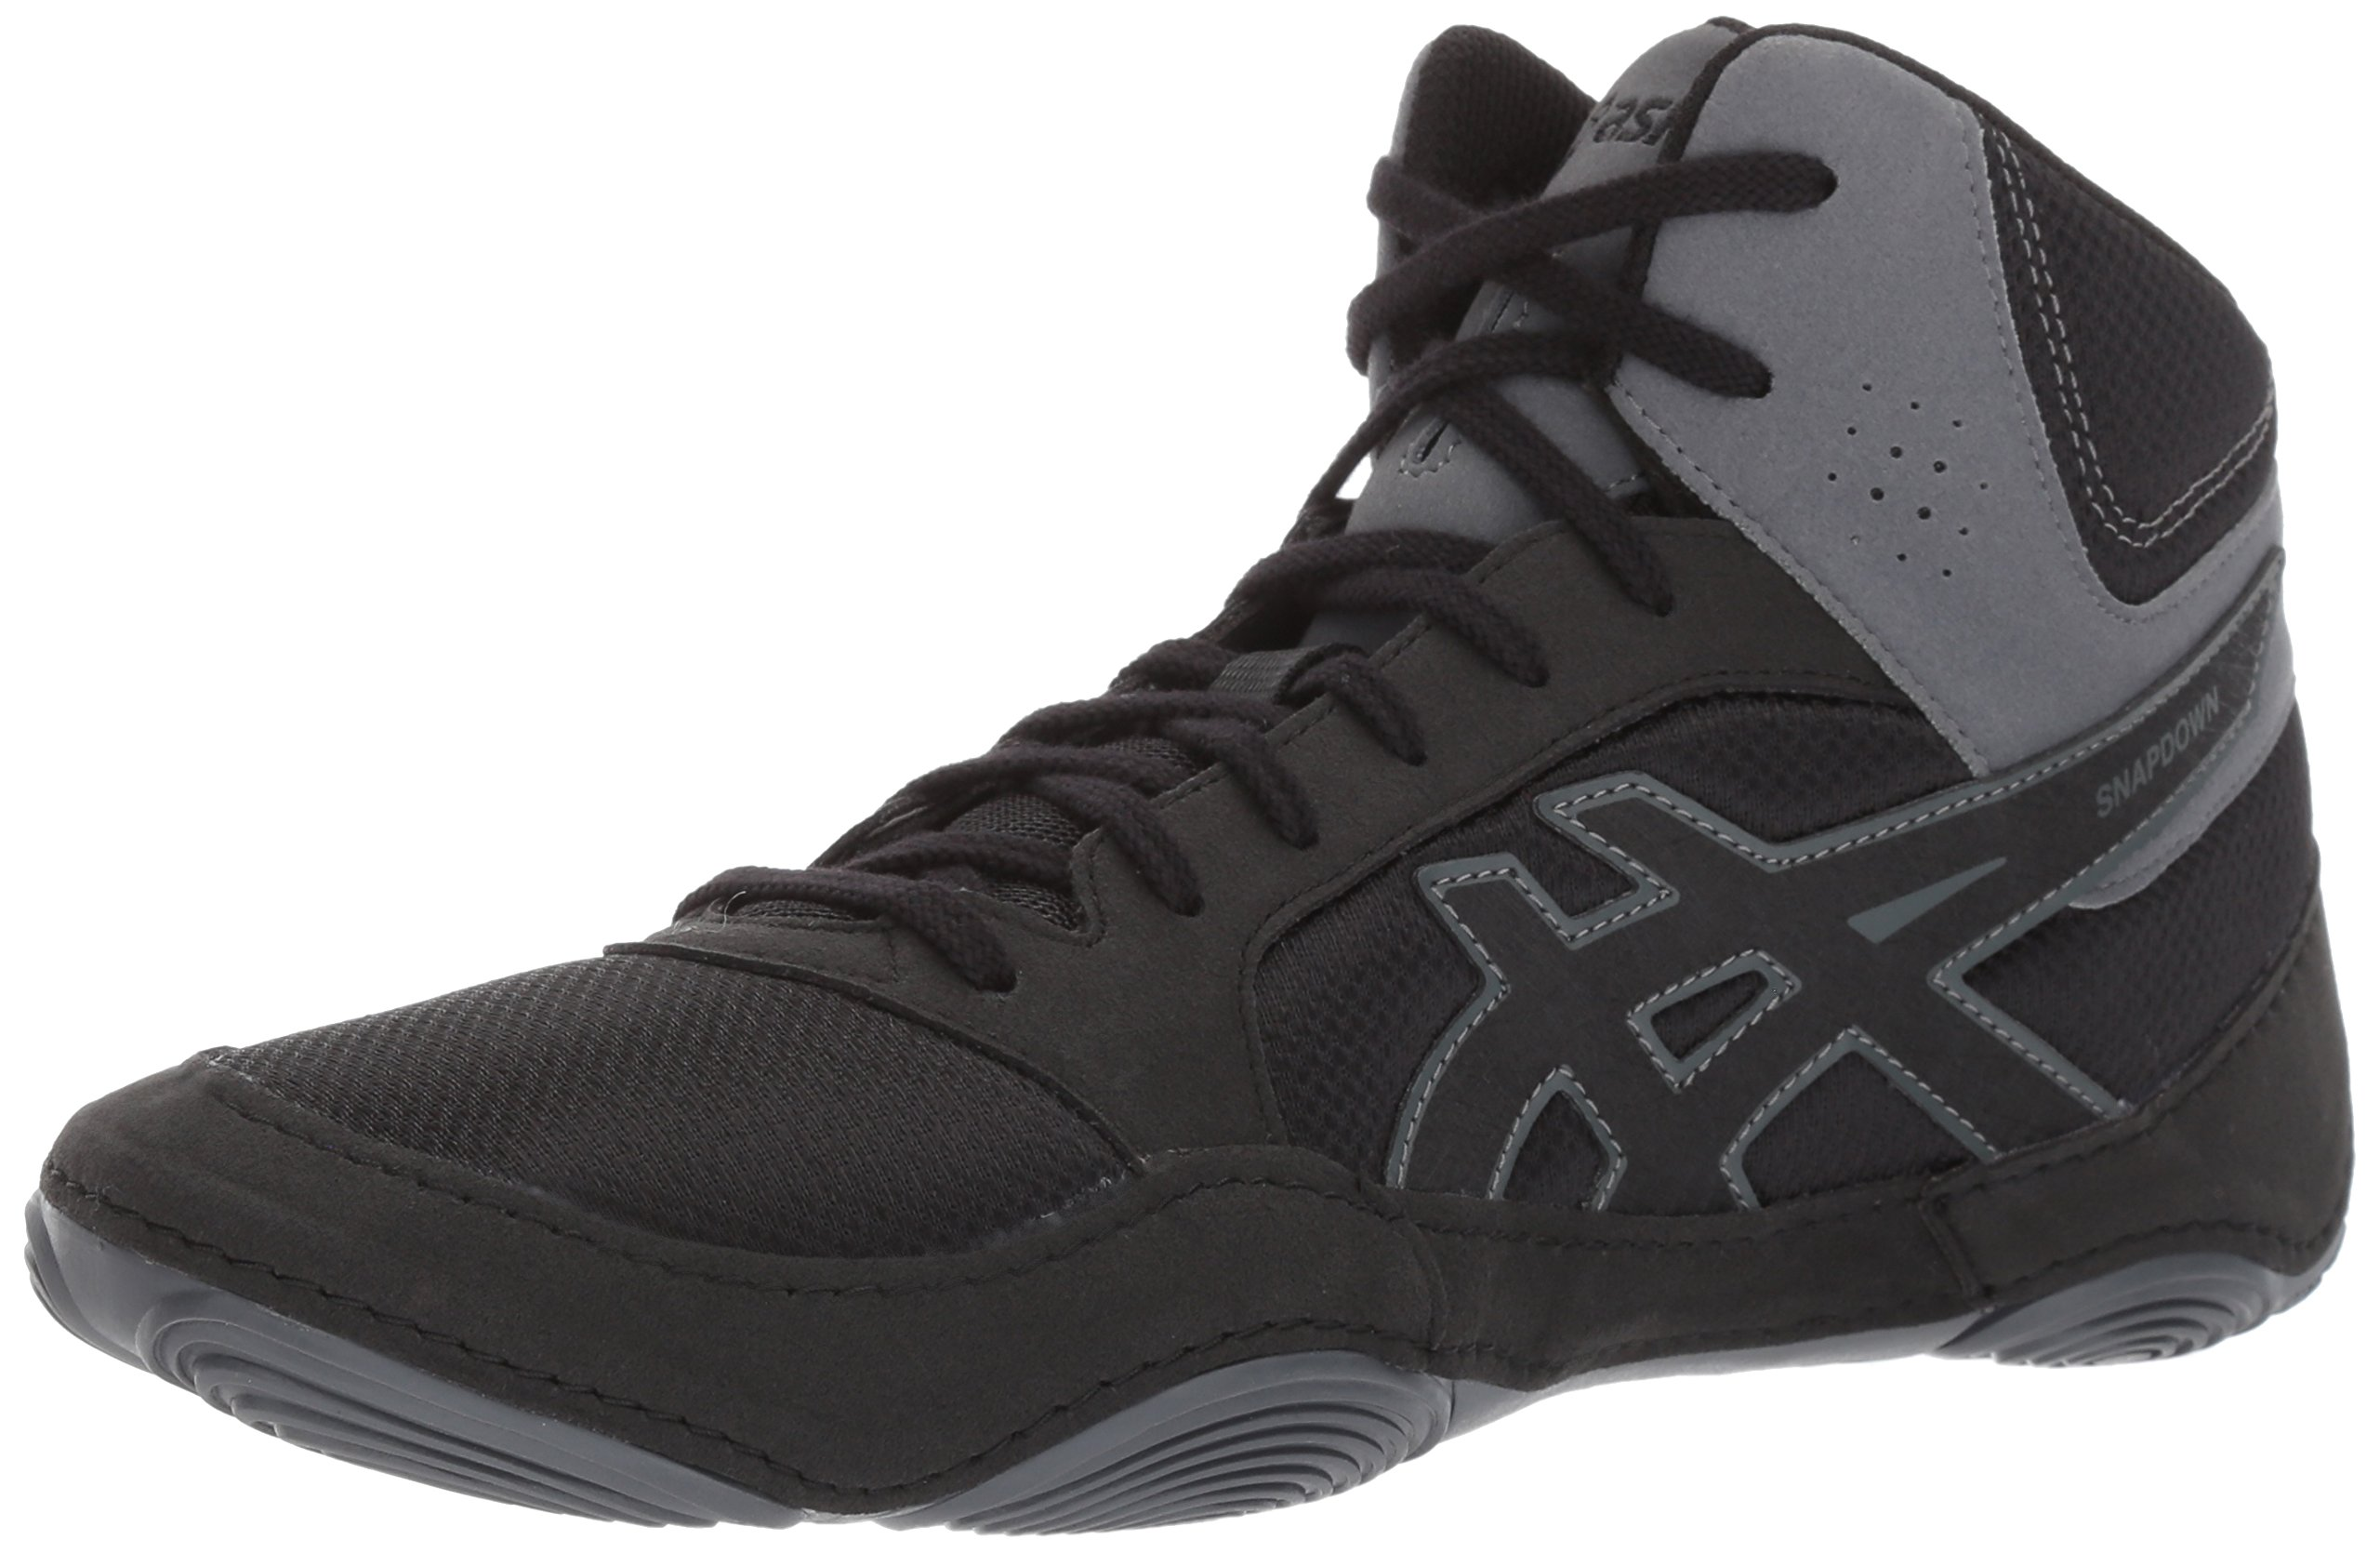 ASICS Men's Snapdown 2 Wrestling-Shoes, Black/Black/Carbon, 10 Medium US